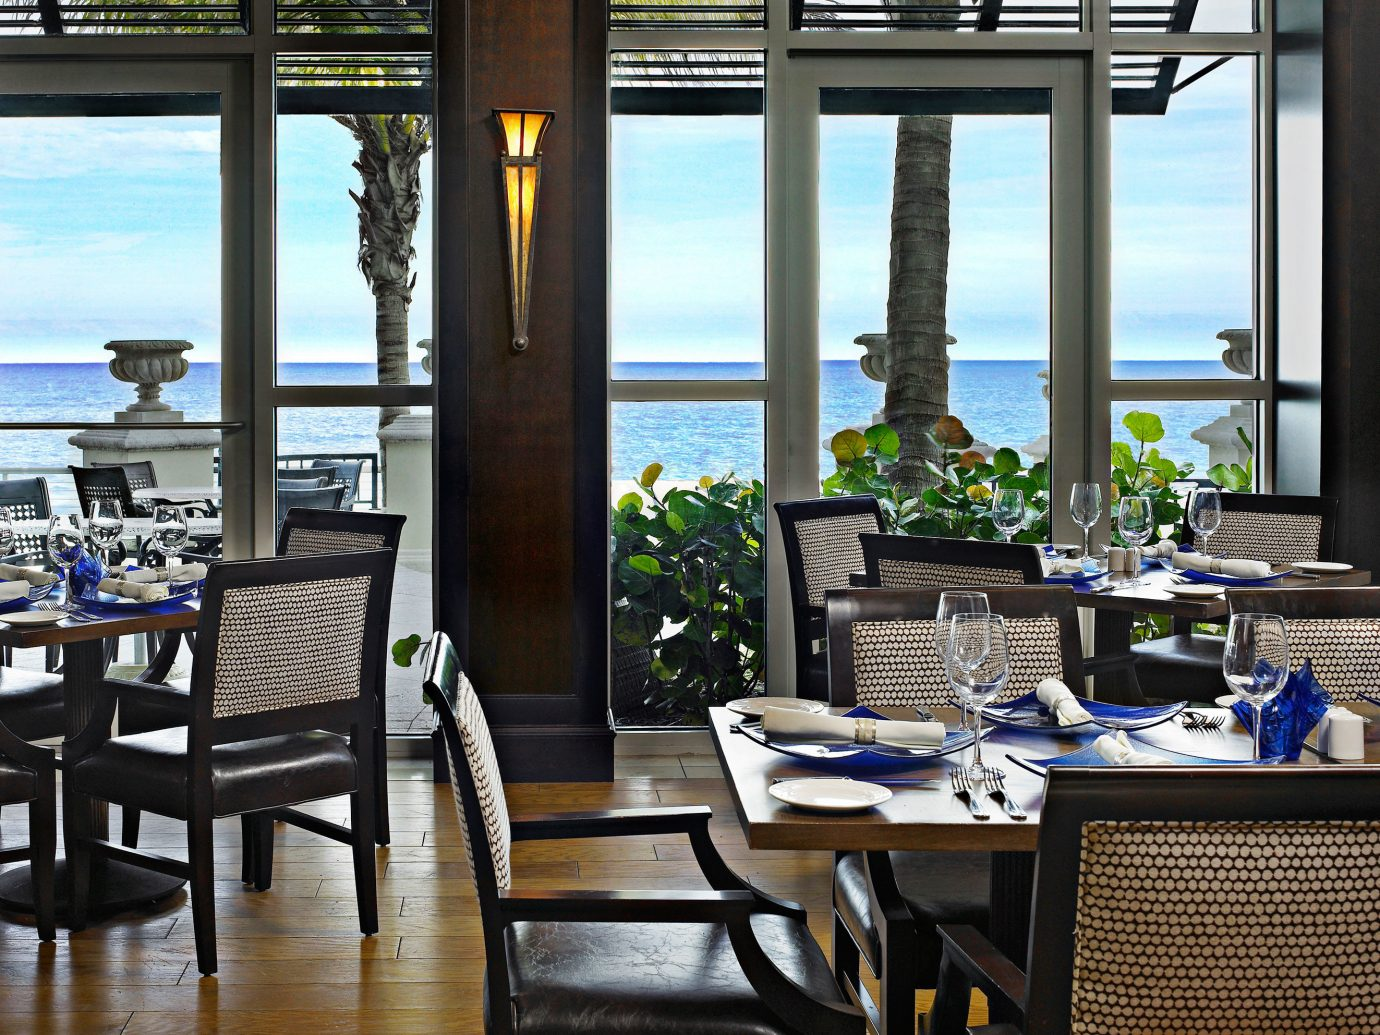 Beachfront Dining Eat Family Modern Trip Ideas chair floor window indoor room property estate restaurant condominium home dining room interior design Resort real estate apartment living room area furniture dining table